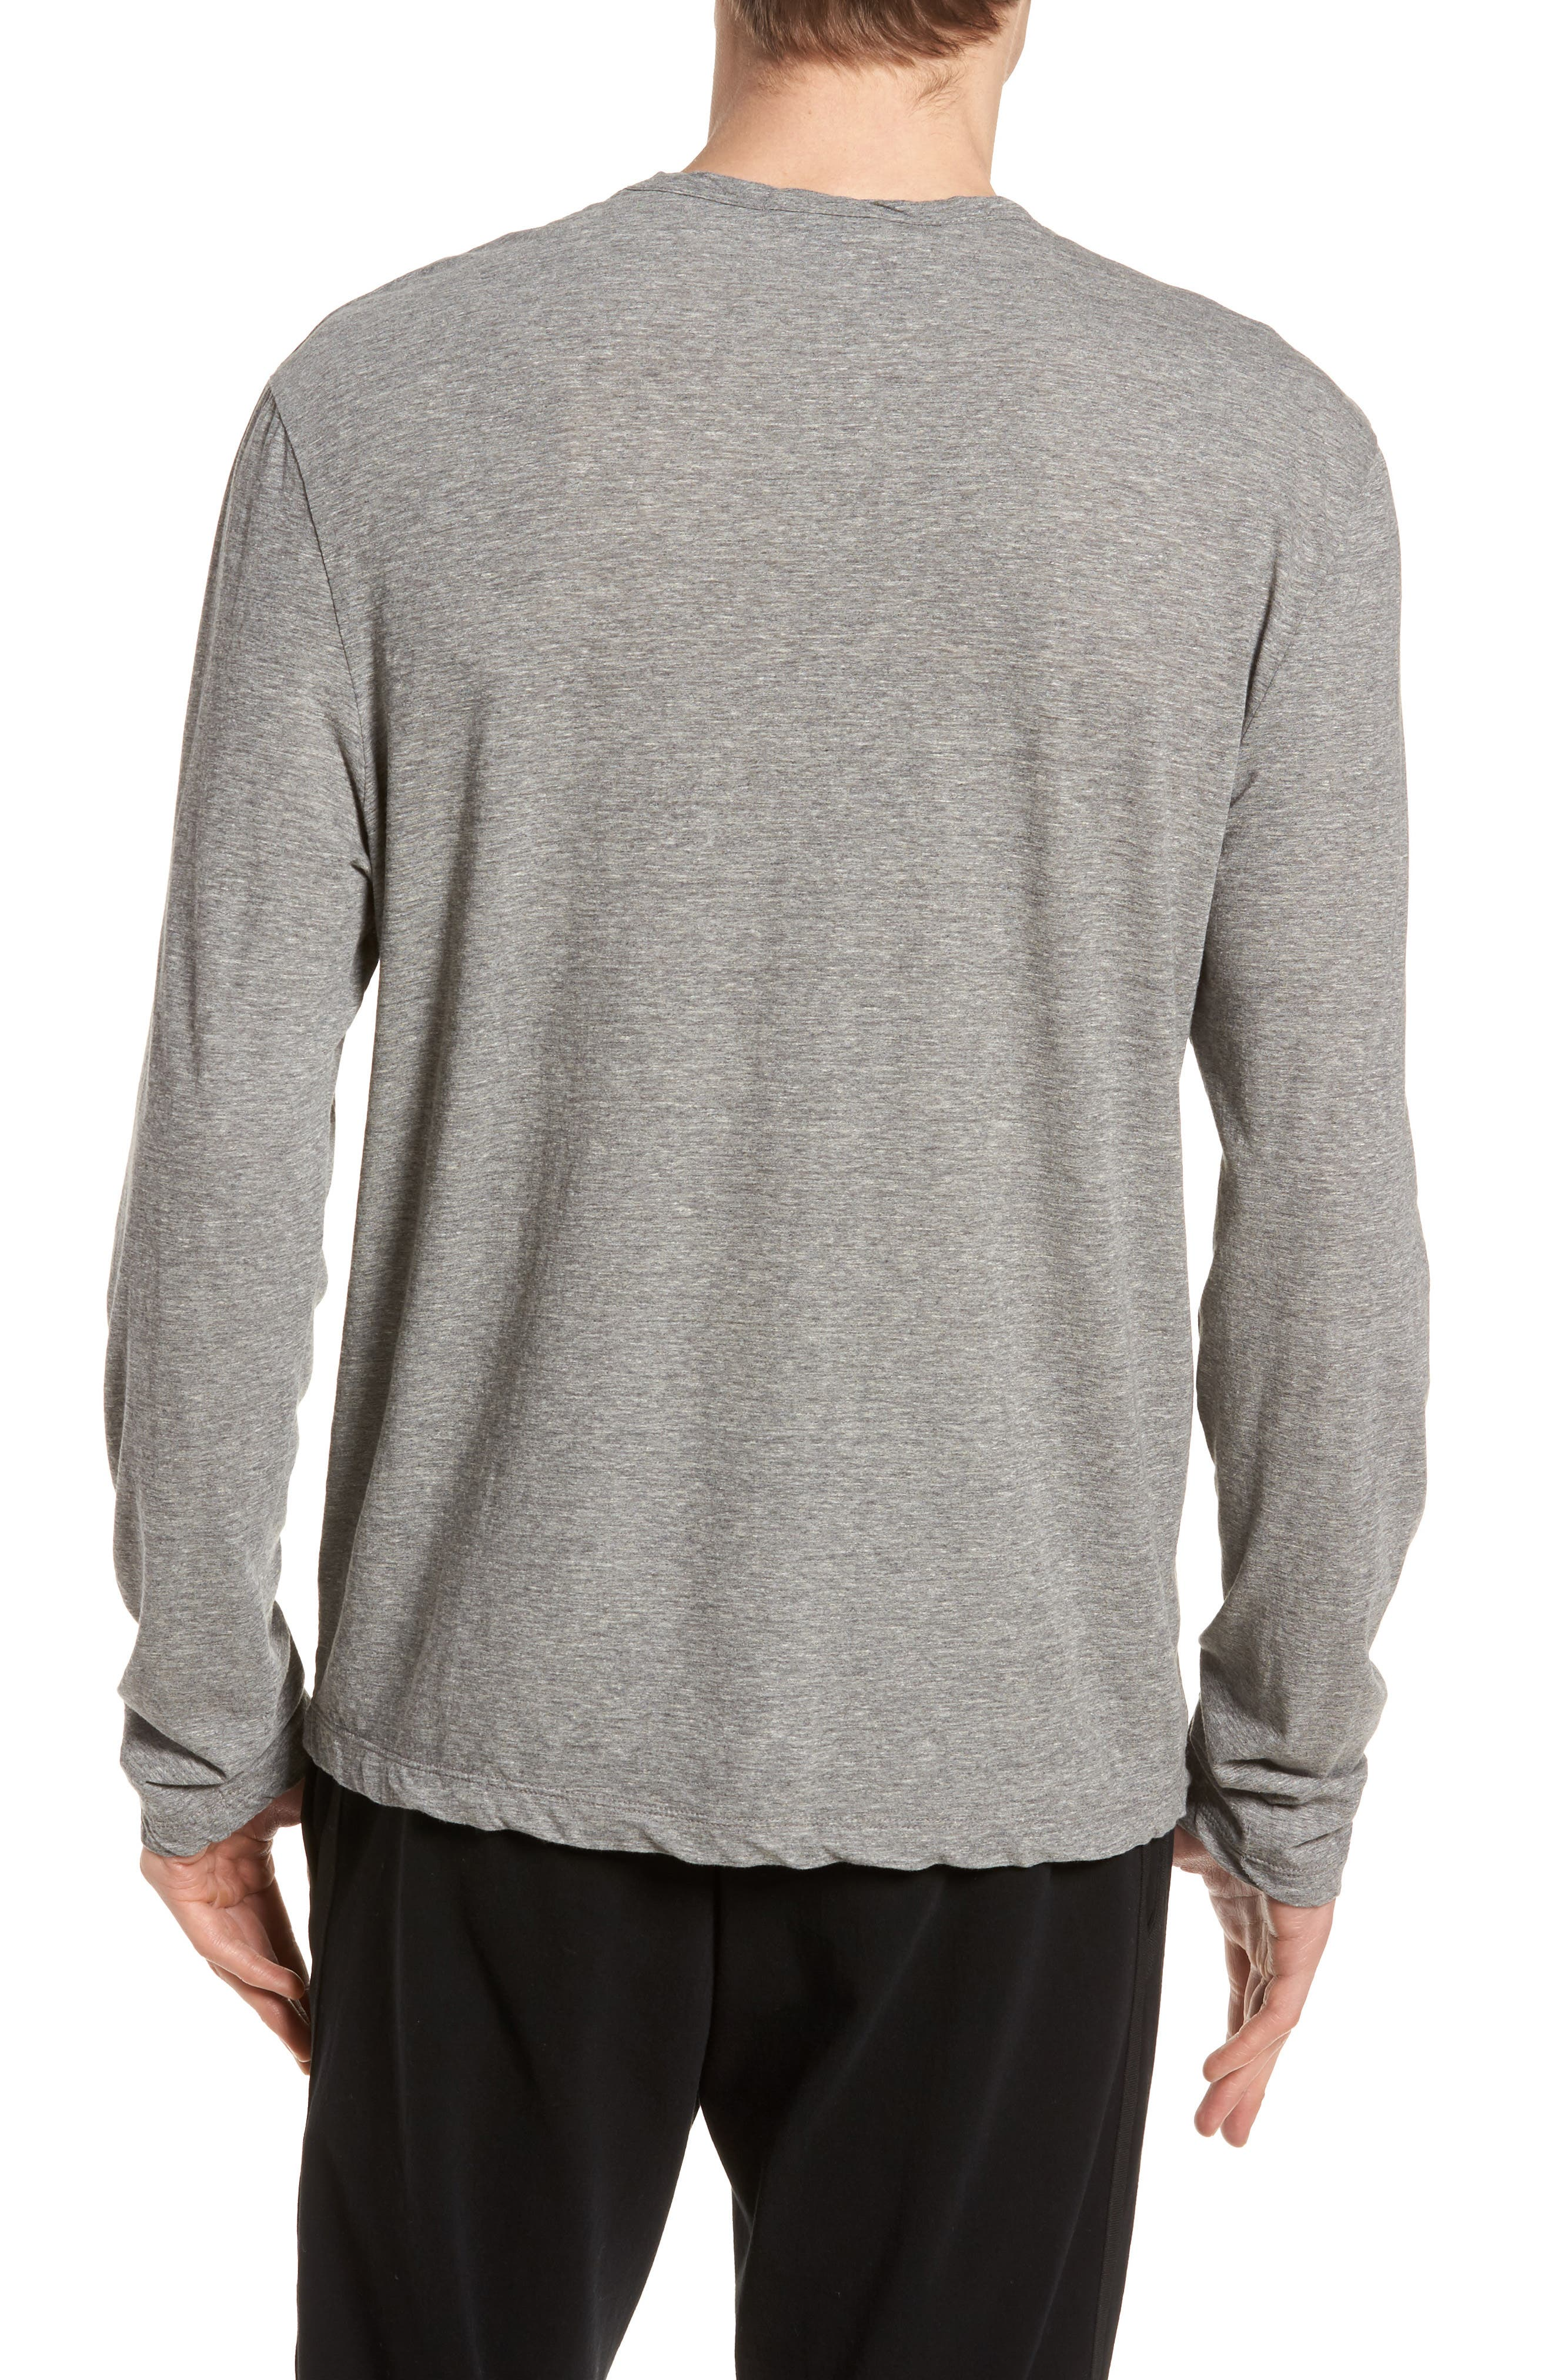 Jamers Perse High Twist Regular Fit Shirt,                             Alternate thumbnail 2, color,                             Heather Grey